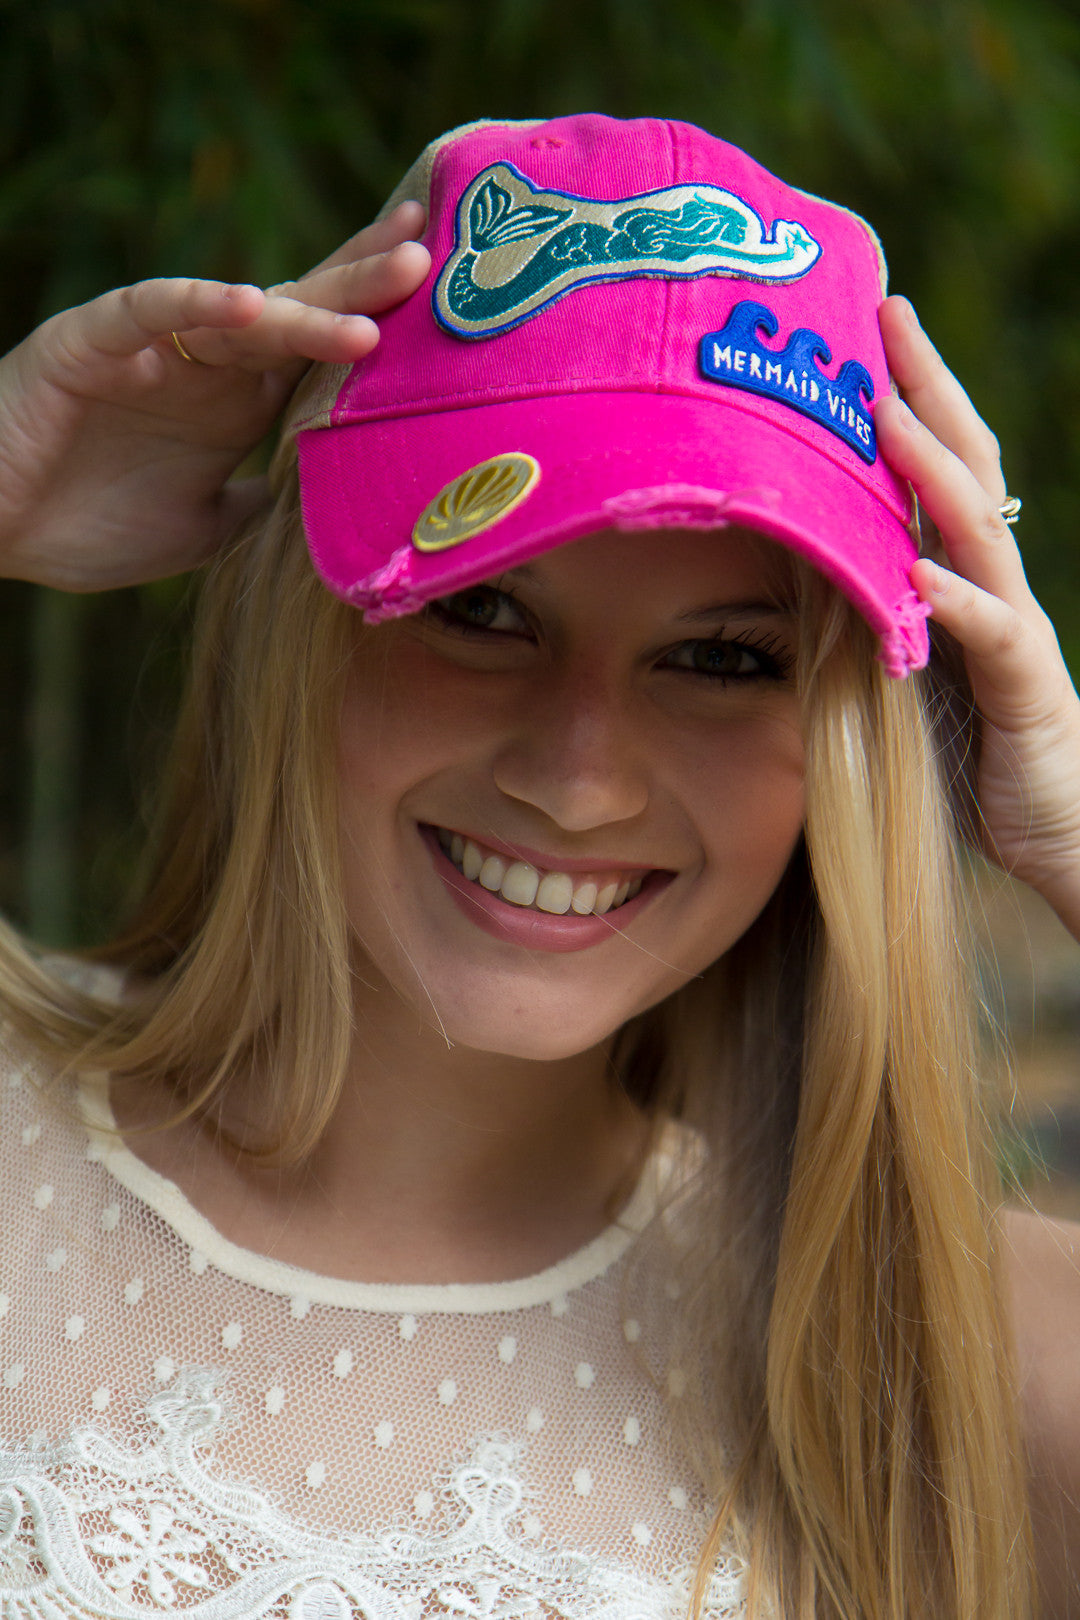 Mermaid Vibes Trucker Hat by Genevieve Gail - Final Sale